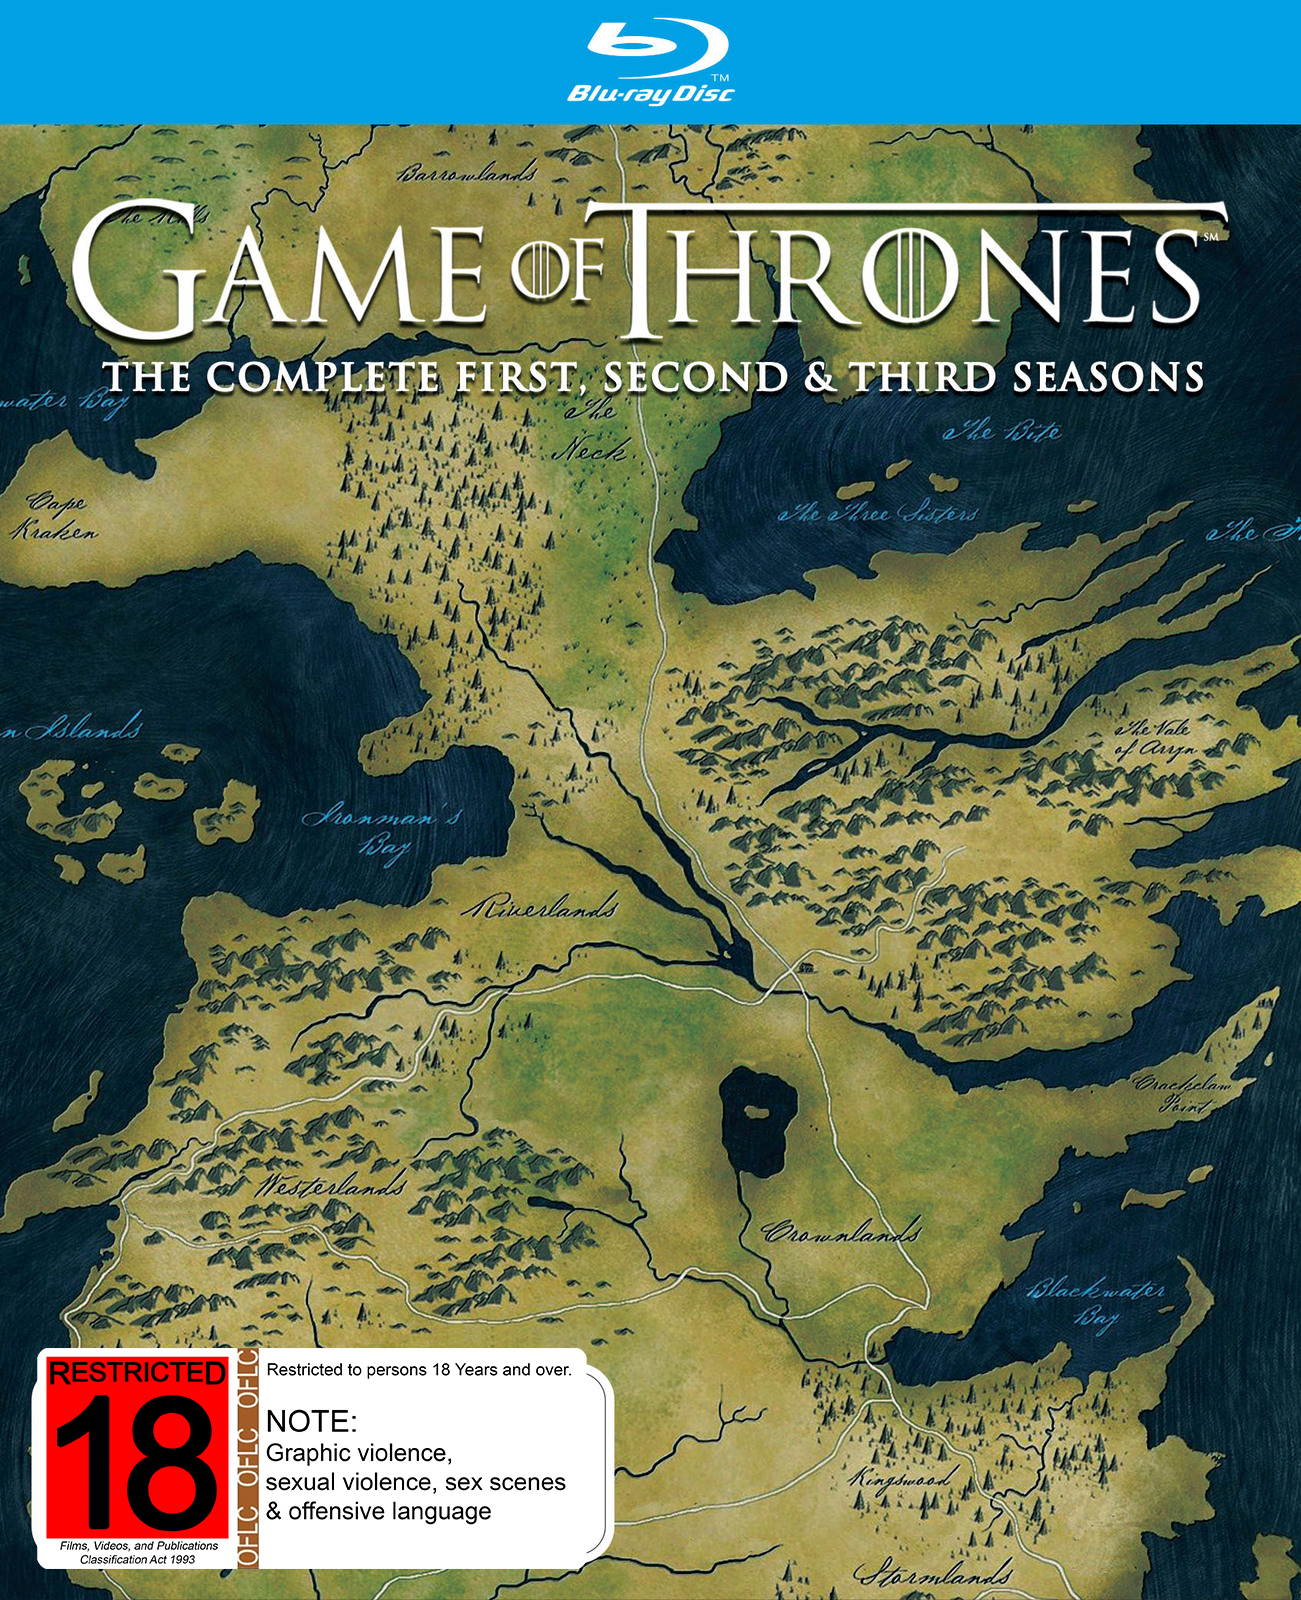 Game of Thrones - The Complete First, Second & Third Season (Vanilla Edition) on Blu-ray image